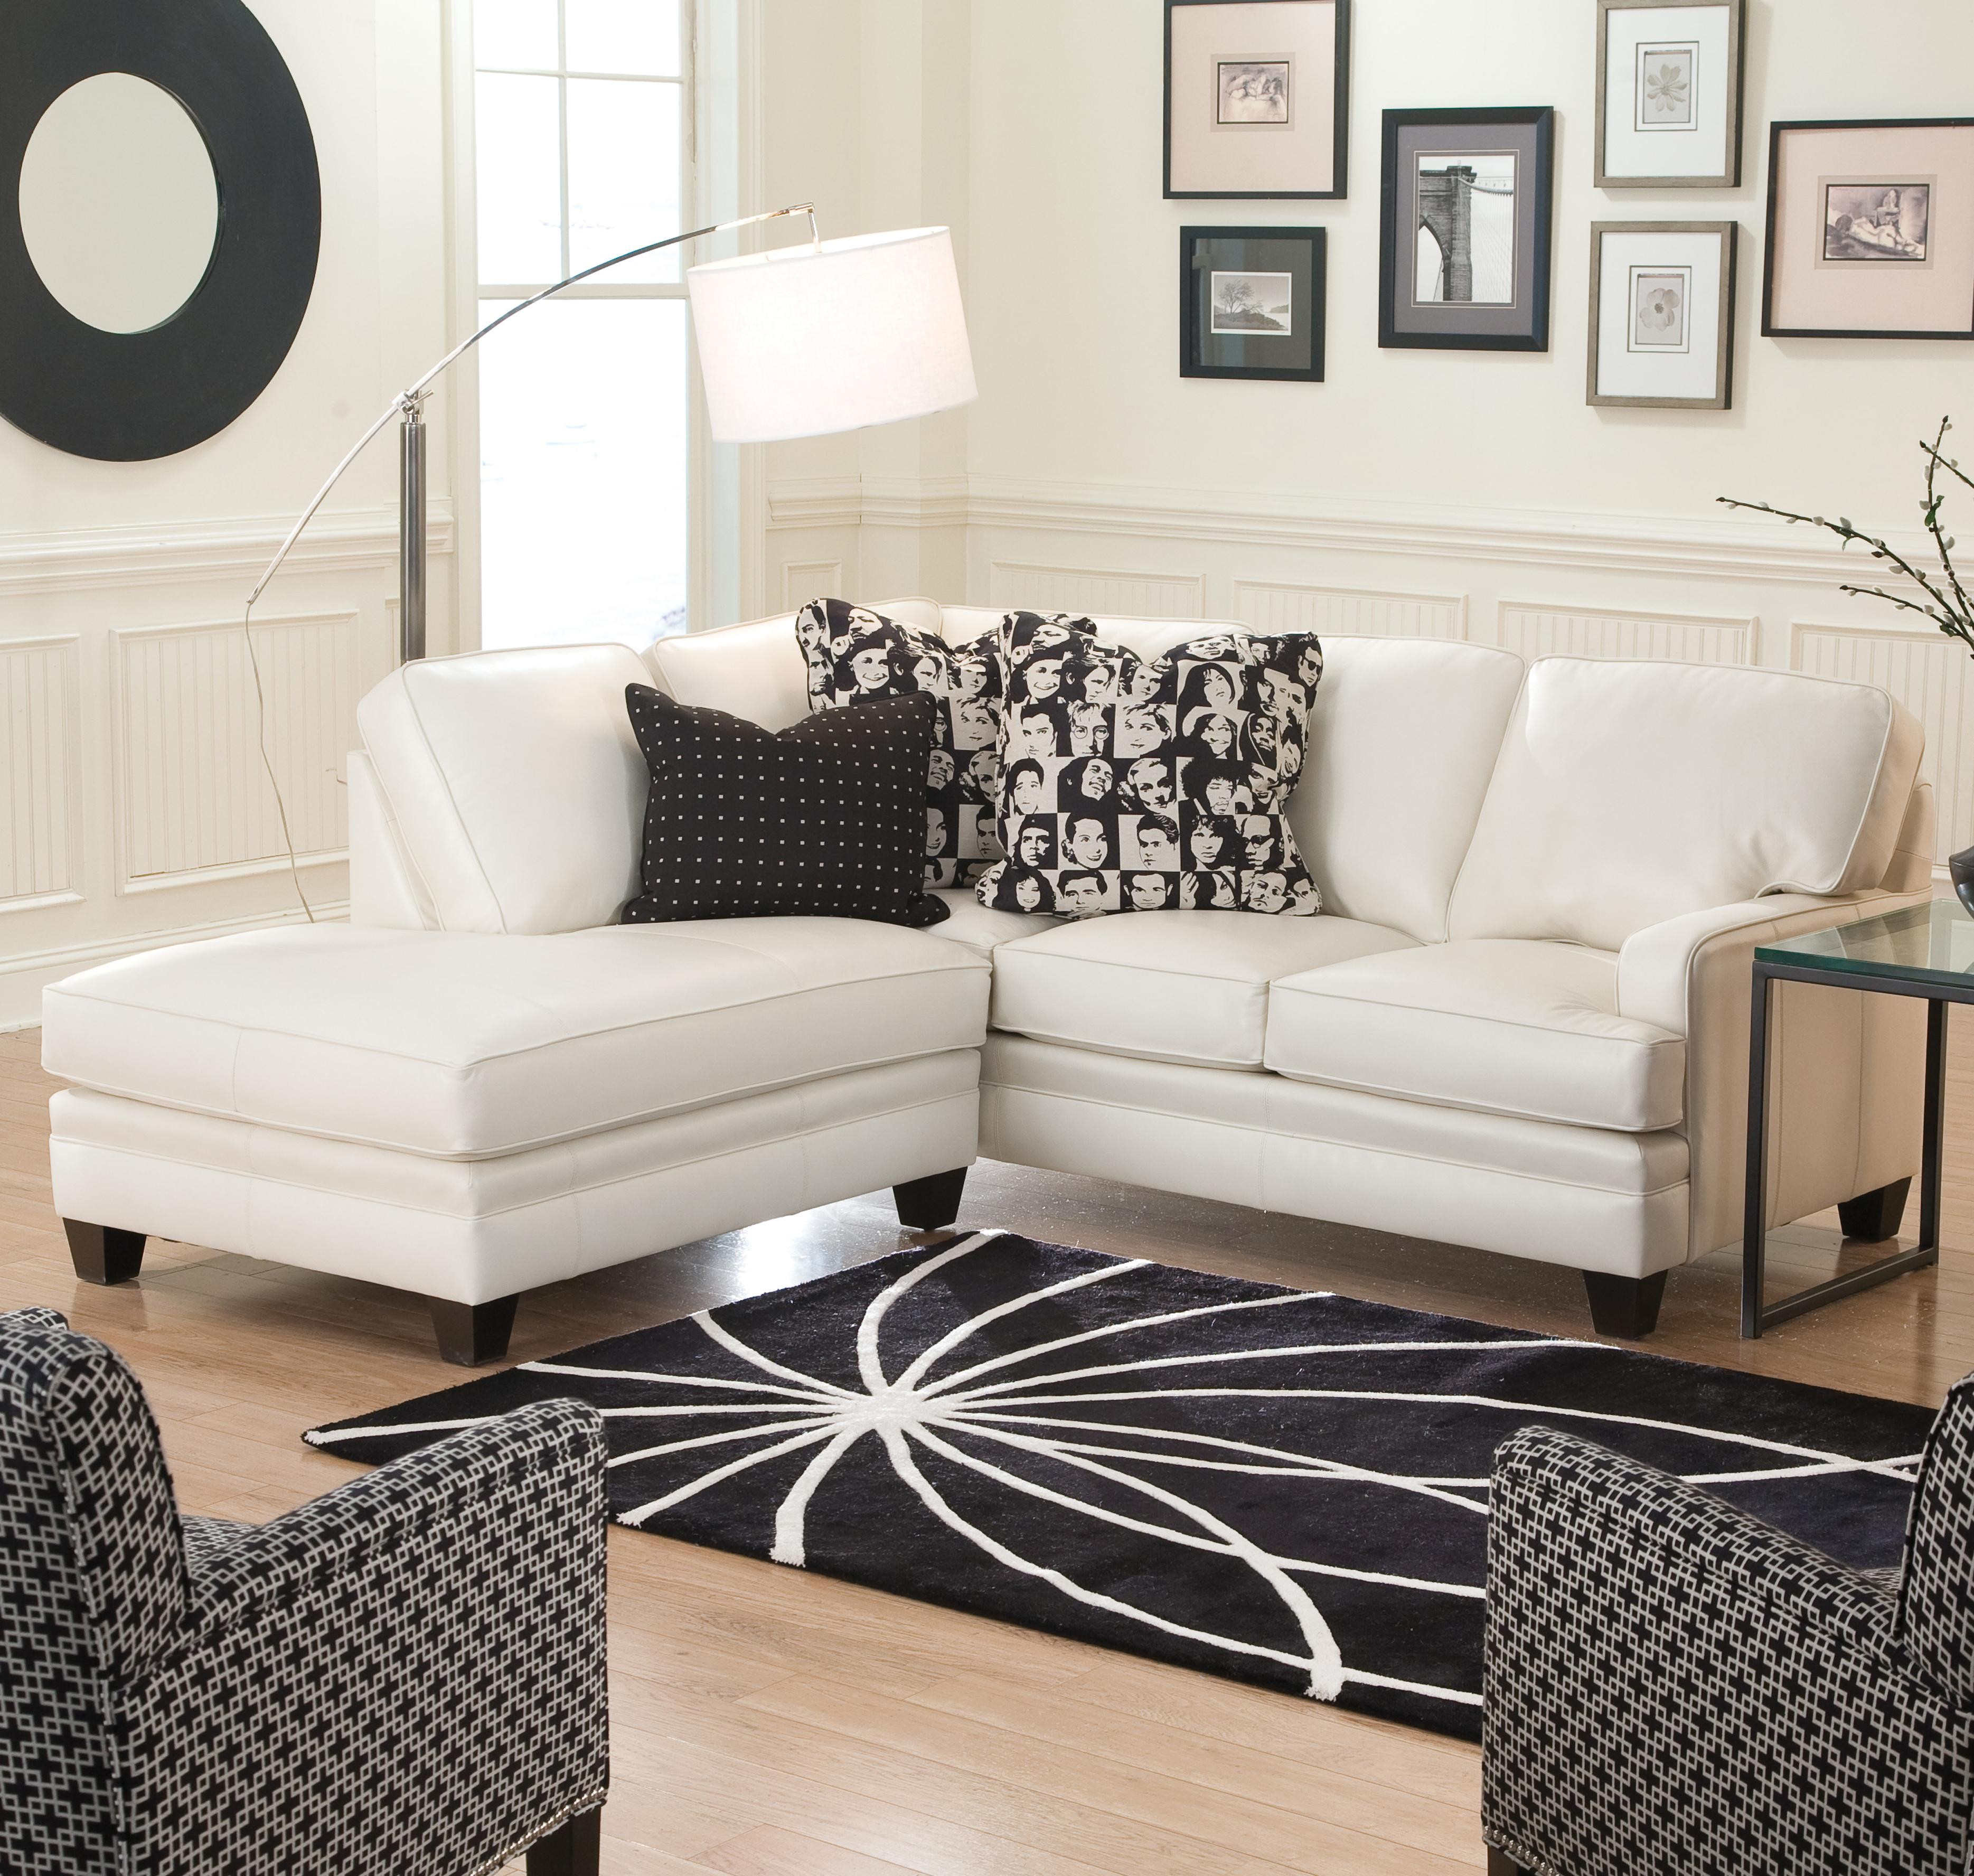 Best ideas about Mini Sectional Sofa . Save or Pin Small Sectional Sofa with Contemporary Look by Smith Now.